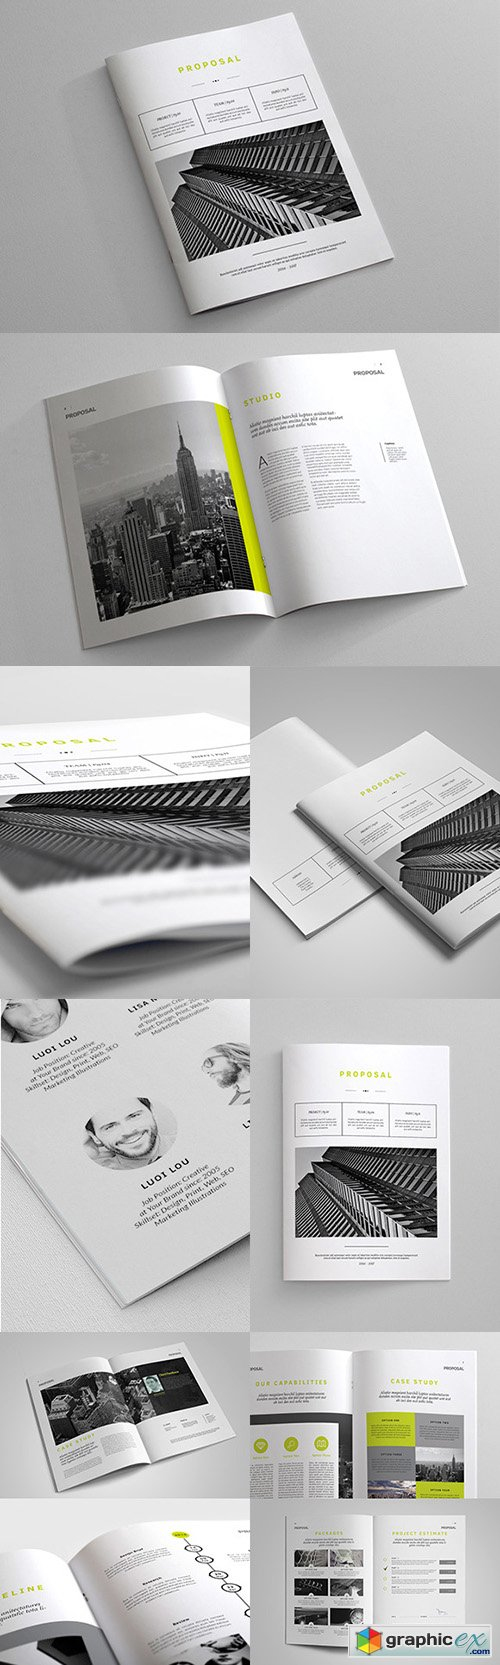 Indesign Business Proposal Template | Template | Pinterest